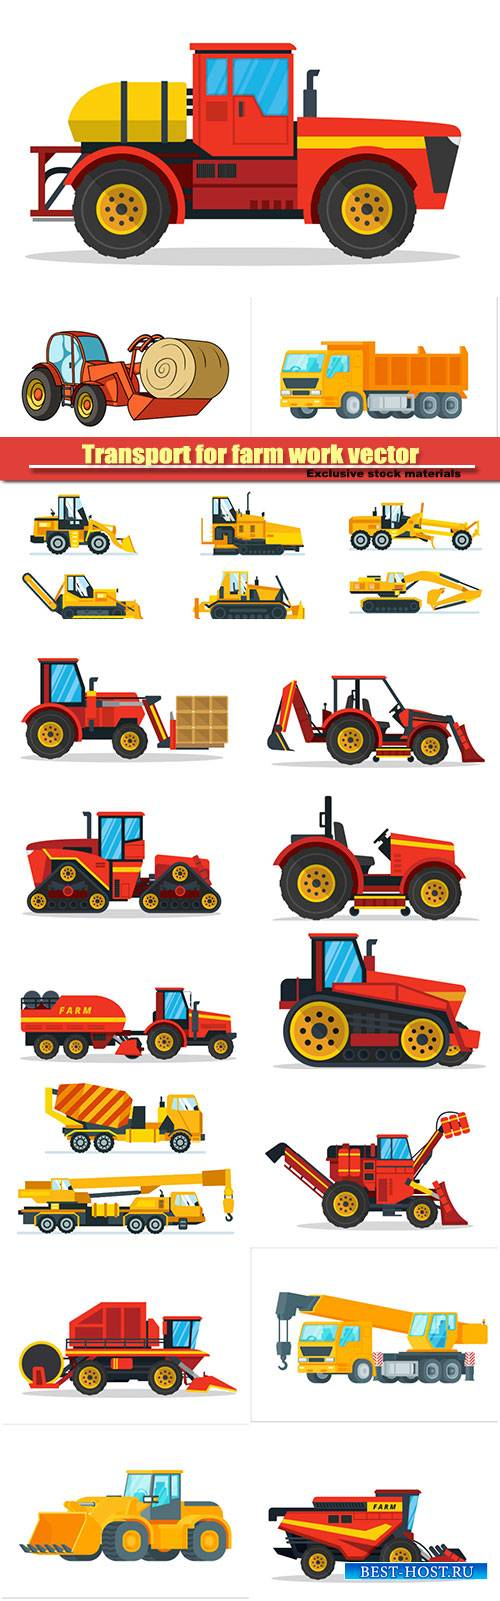 Transport for farm work vector